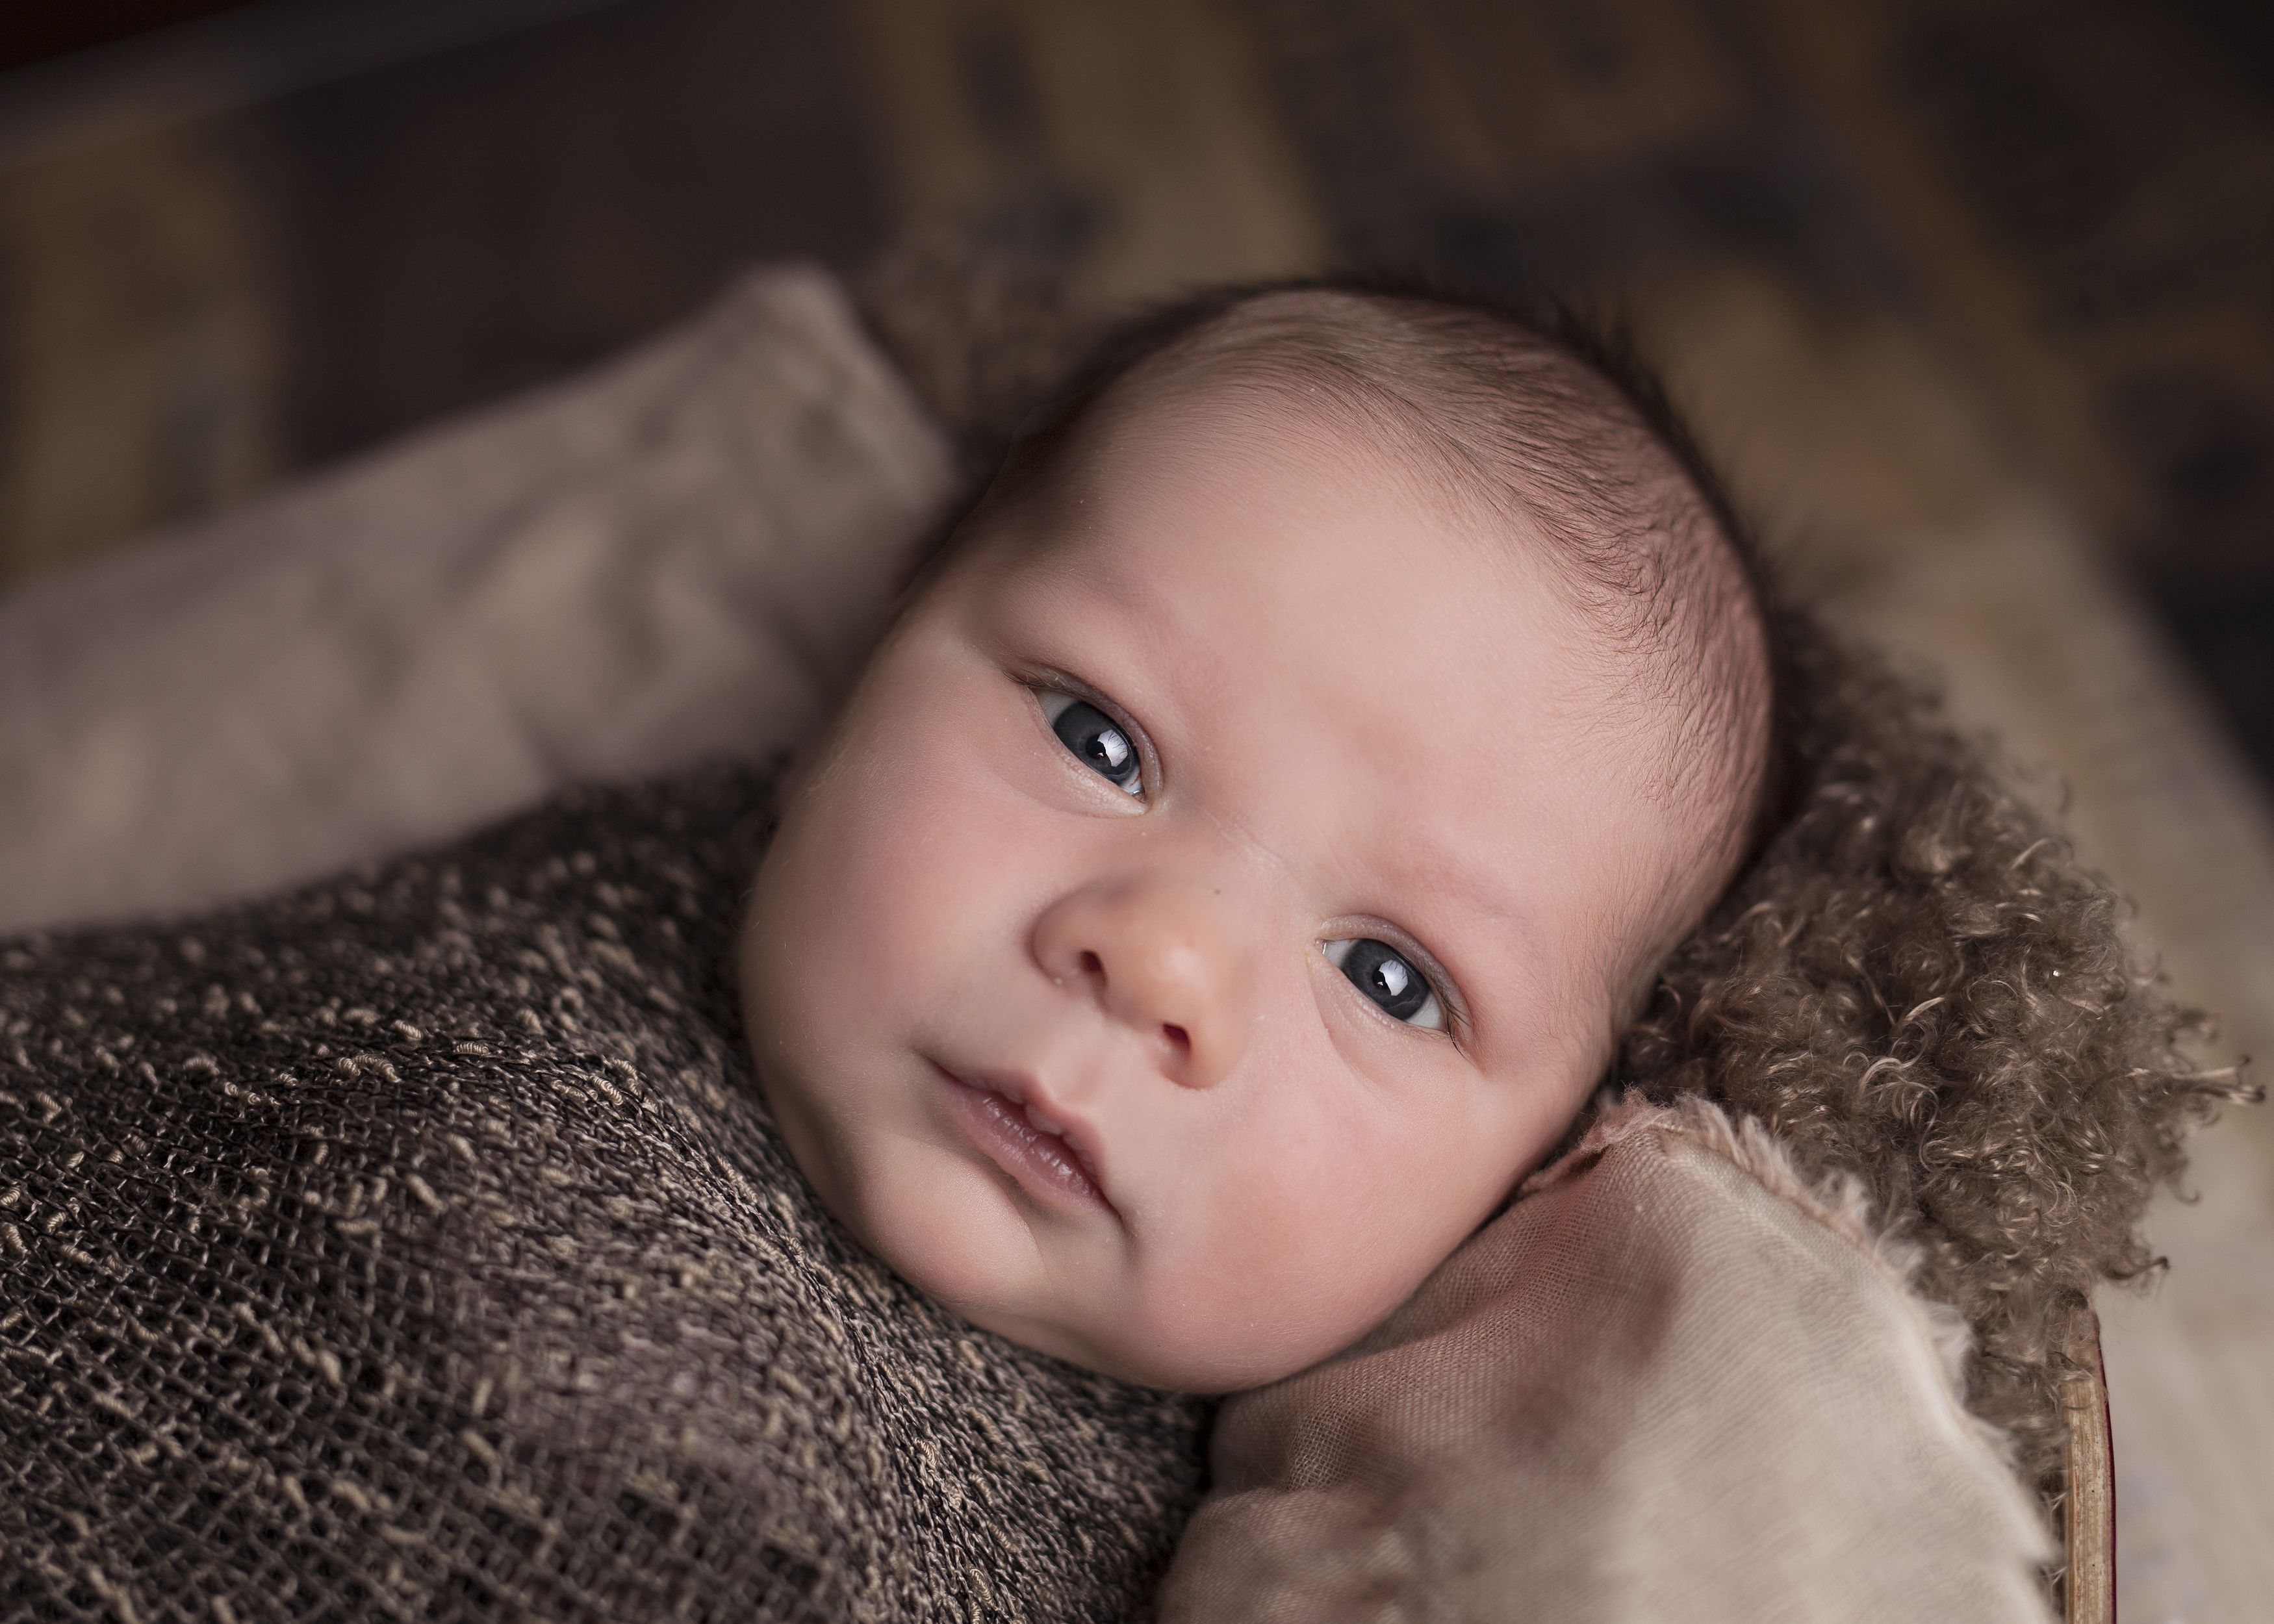 Learn when you should use sleepy cues, wake times and clock times to maximize your baby's ability to sleep well. Each work best at different times.